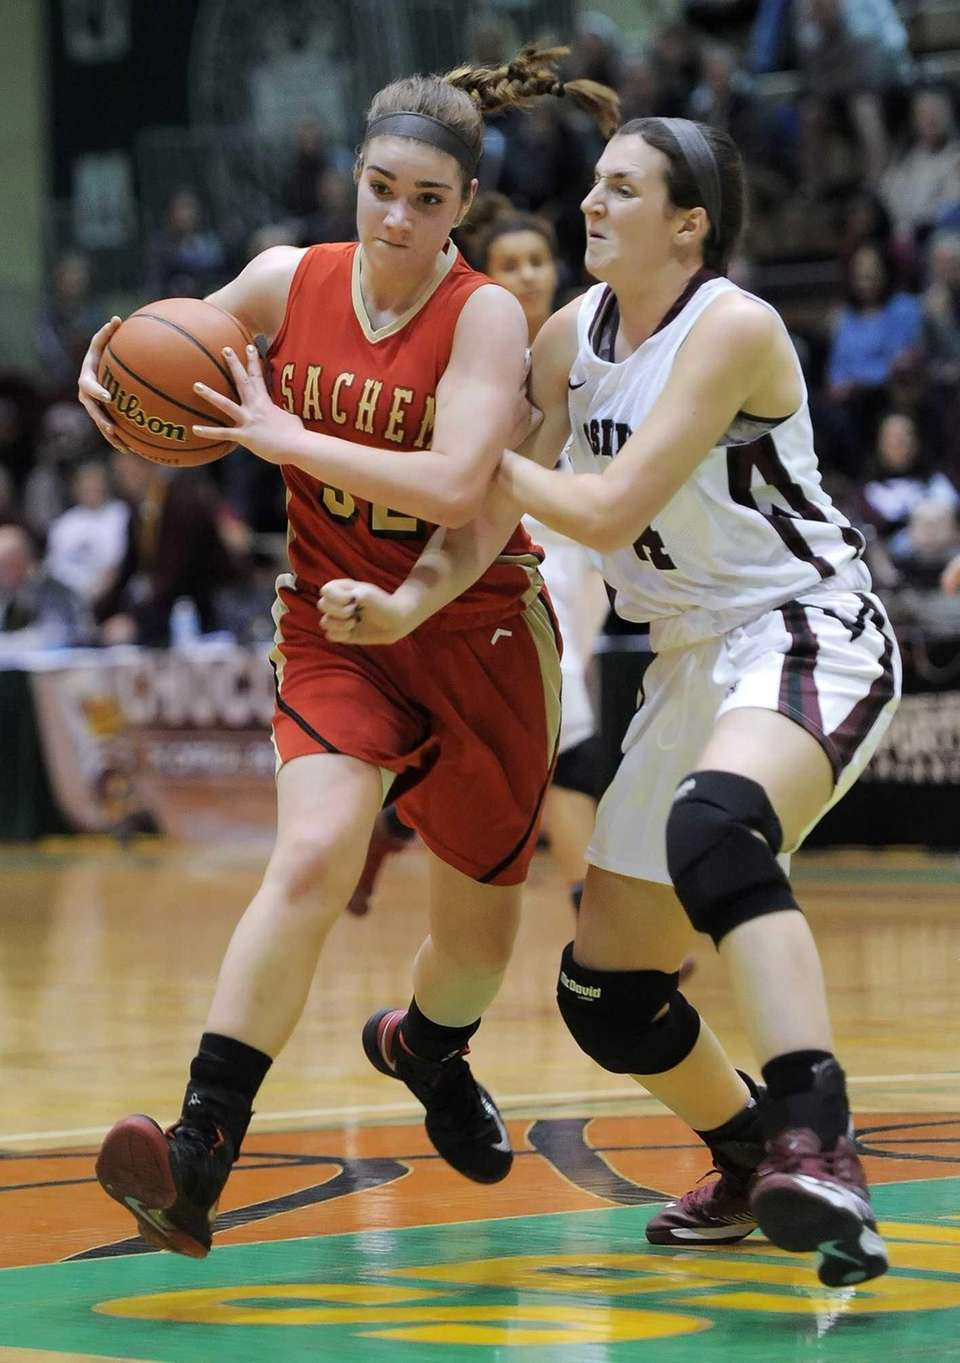 Sachem East's Sammy Drake, left, draws a foul